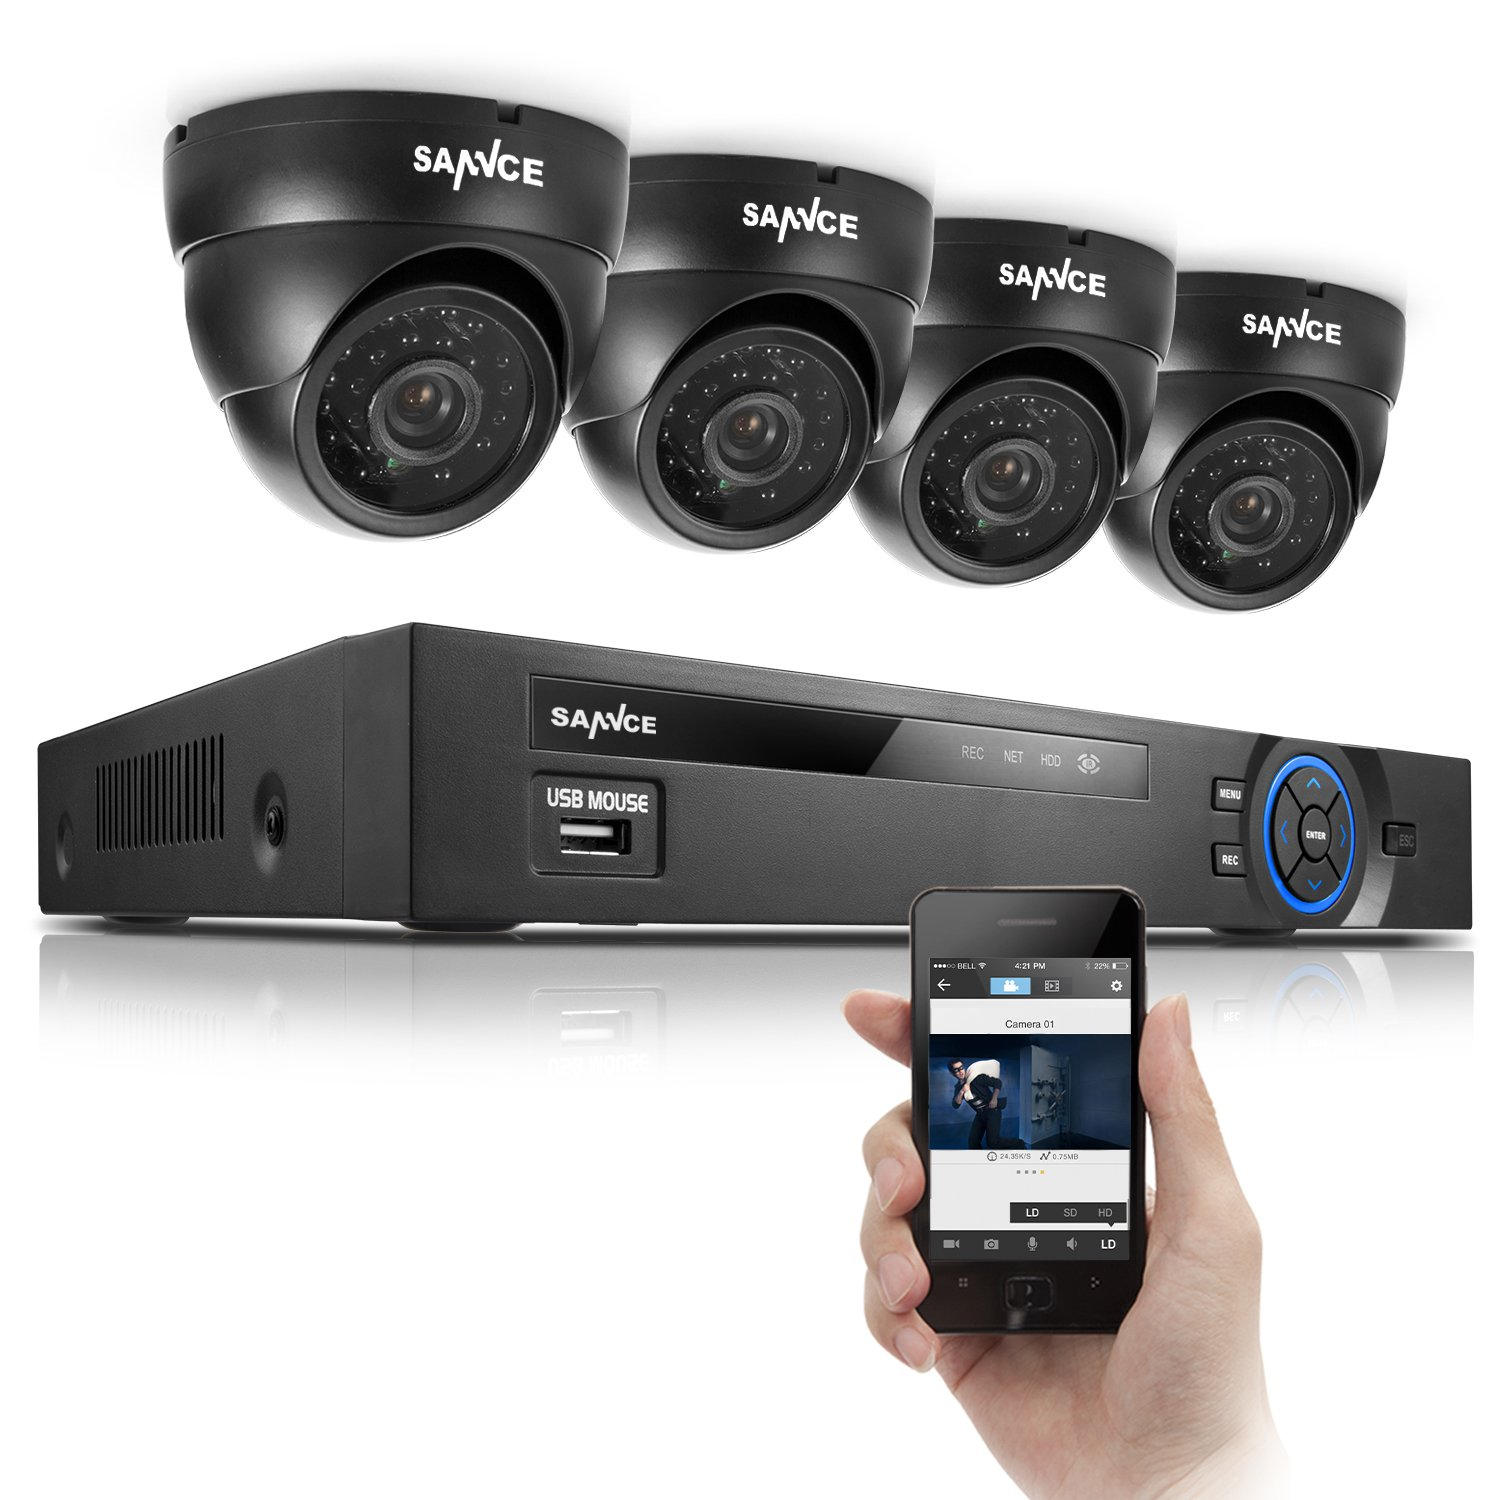 Top 10 best home wireless security cameras in 2015 2016 for Top 10 security systems for home